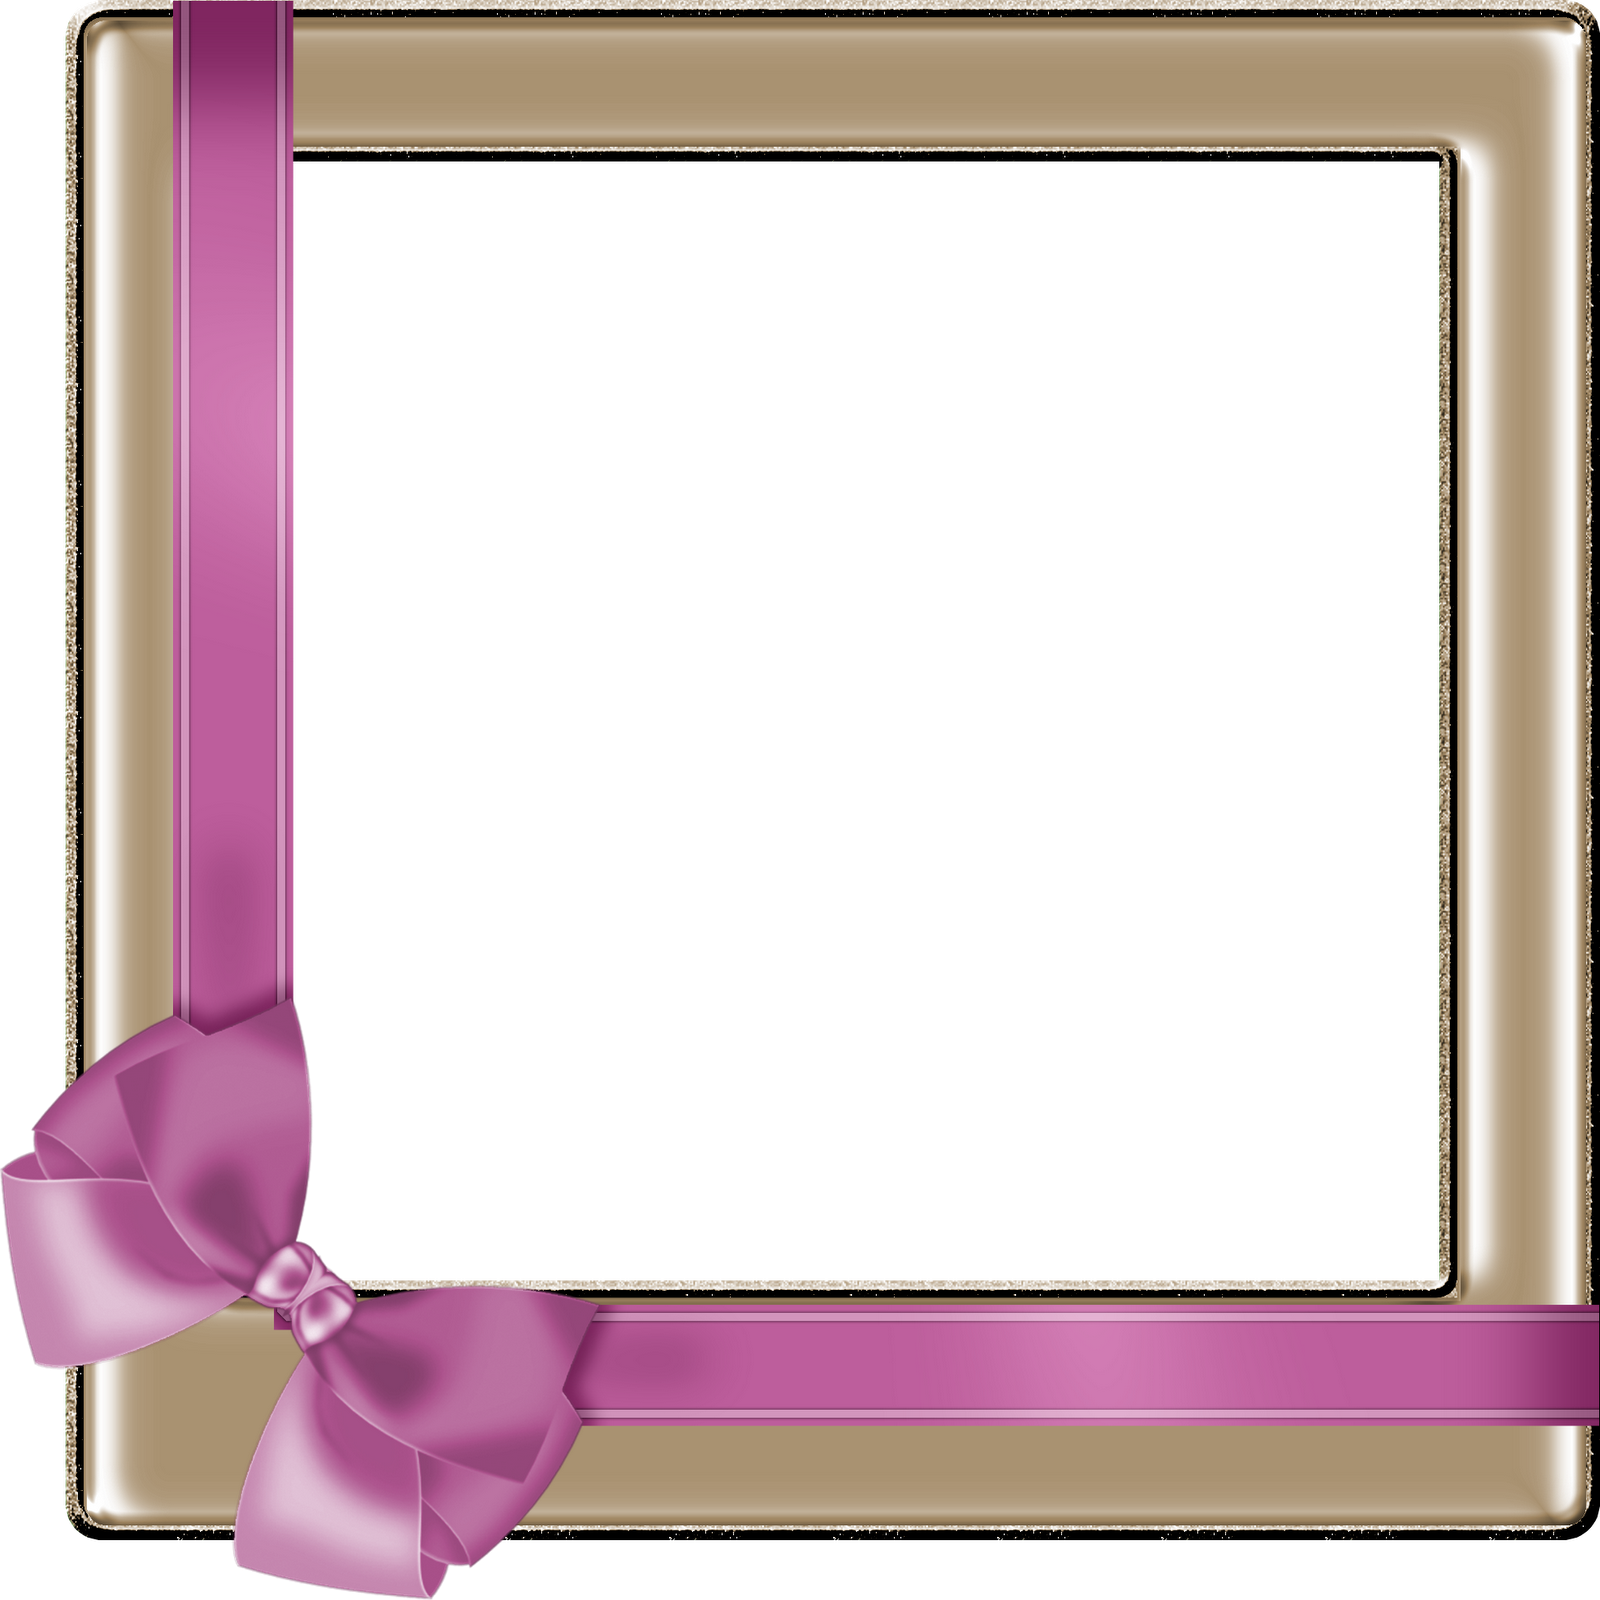 Photoshop Frame - ClipArt Best